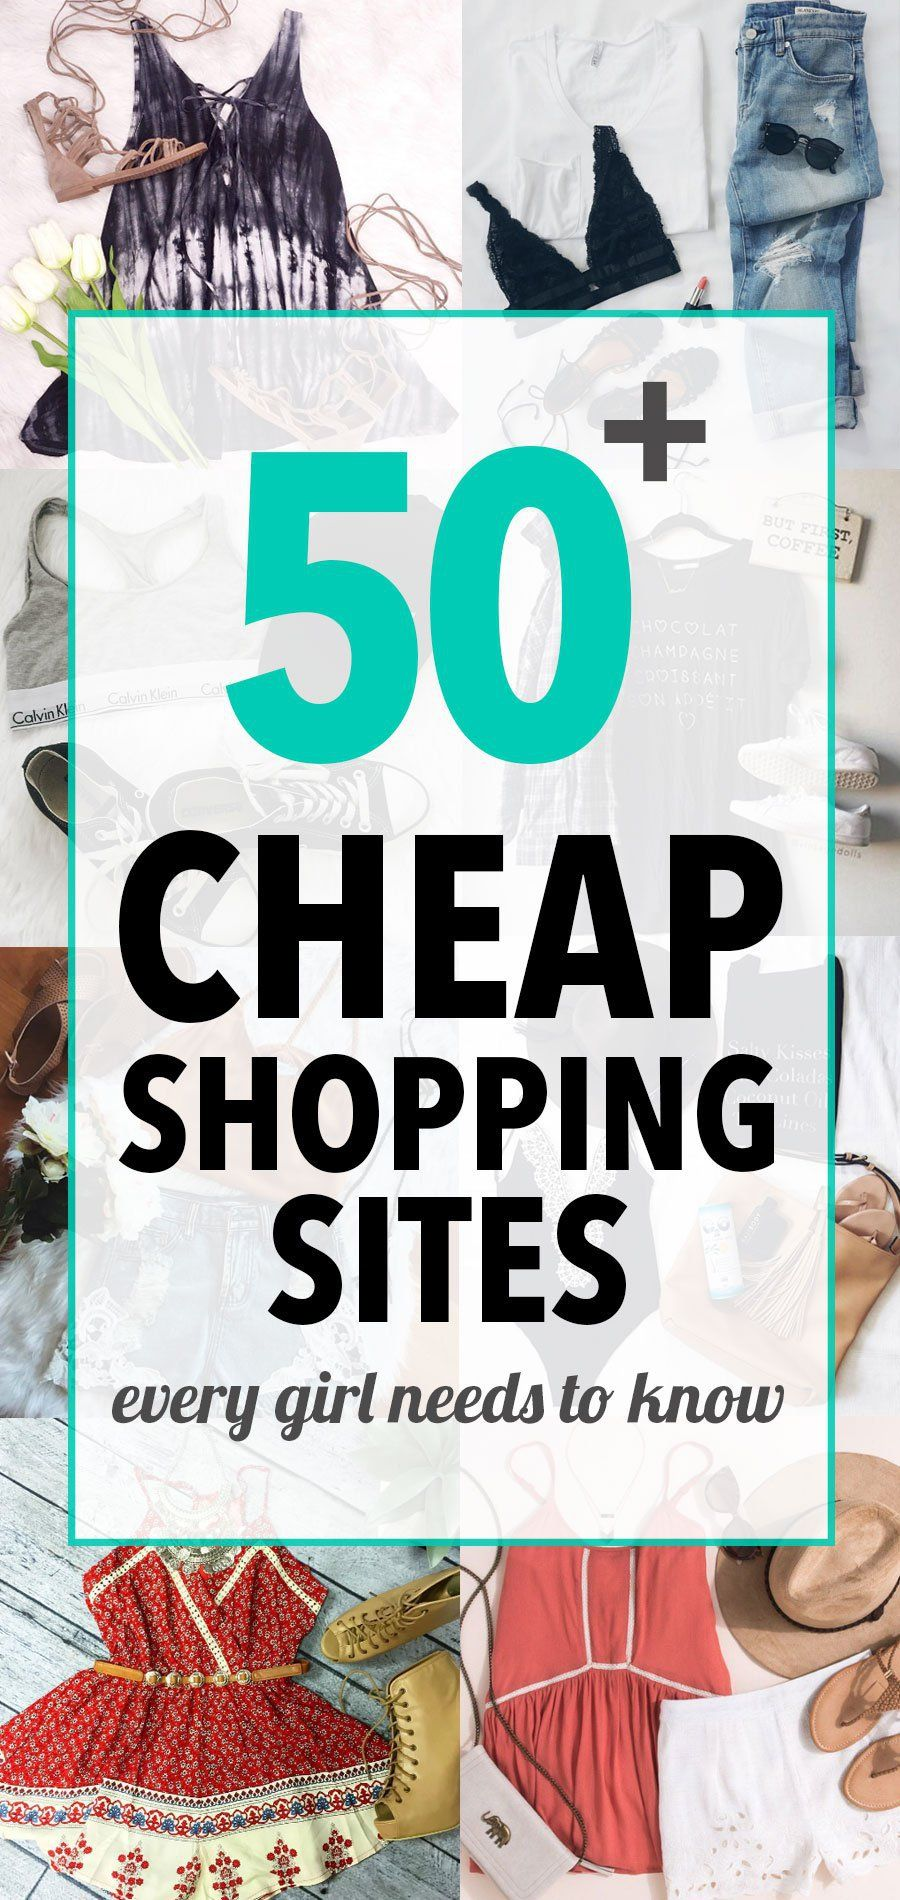 ef5fd7aa6 50 Cheap Shopping Sites Every Girl Needs To Know